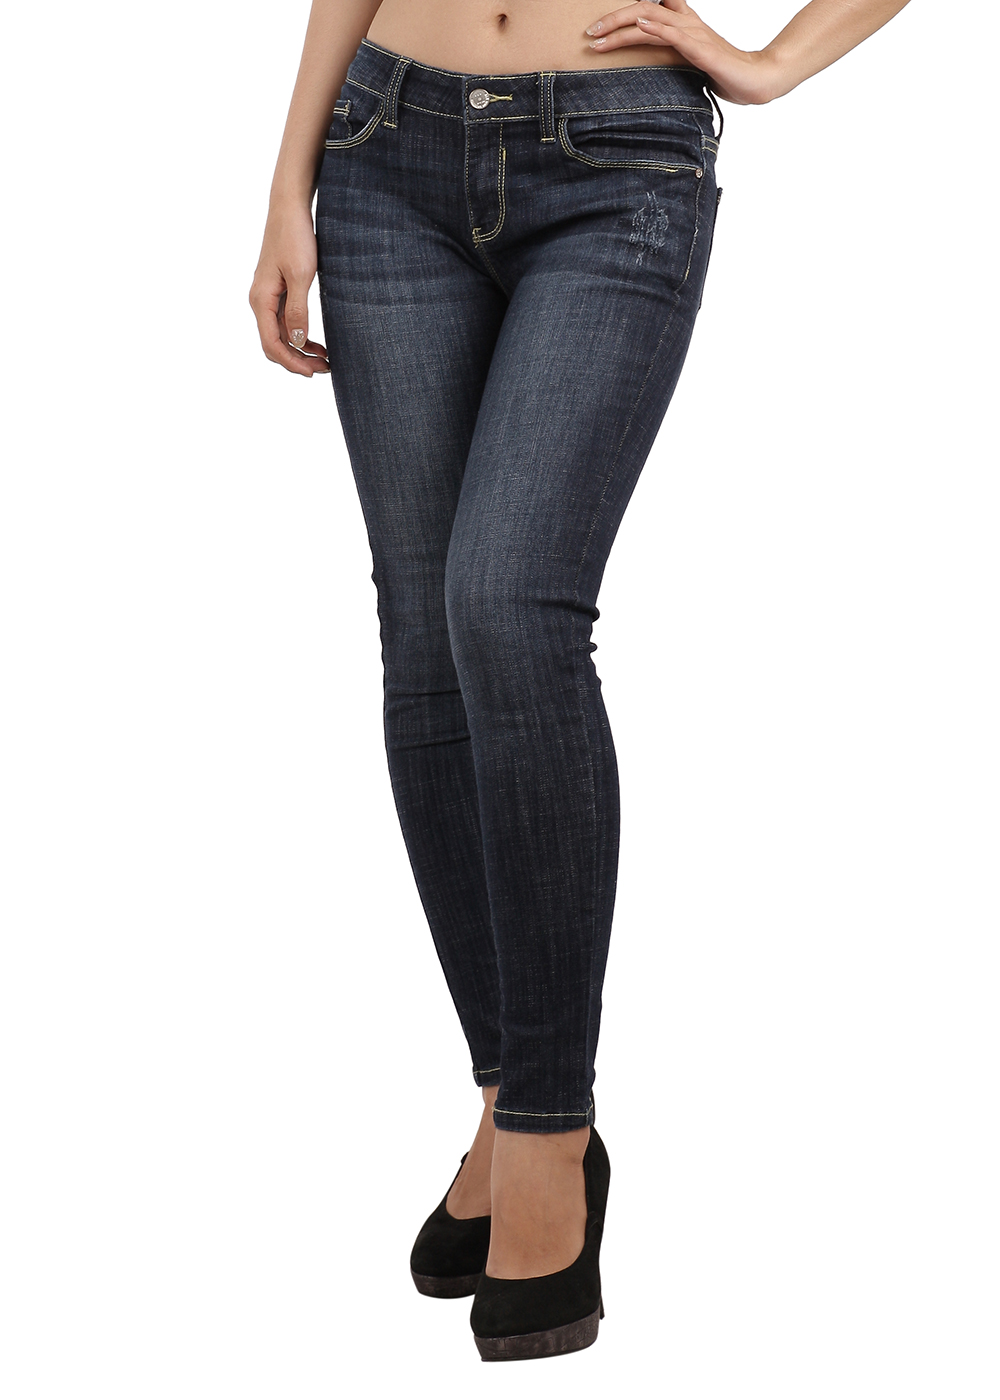 Quần Jeans Skinny Nữ ALE JEANS 60305SK